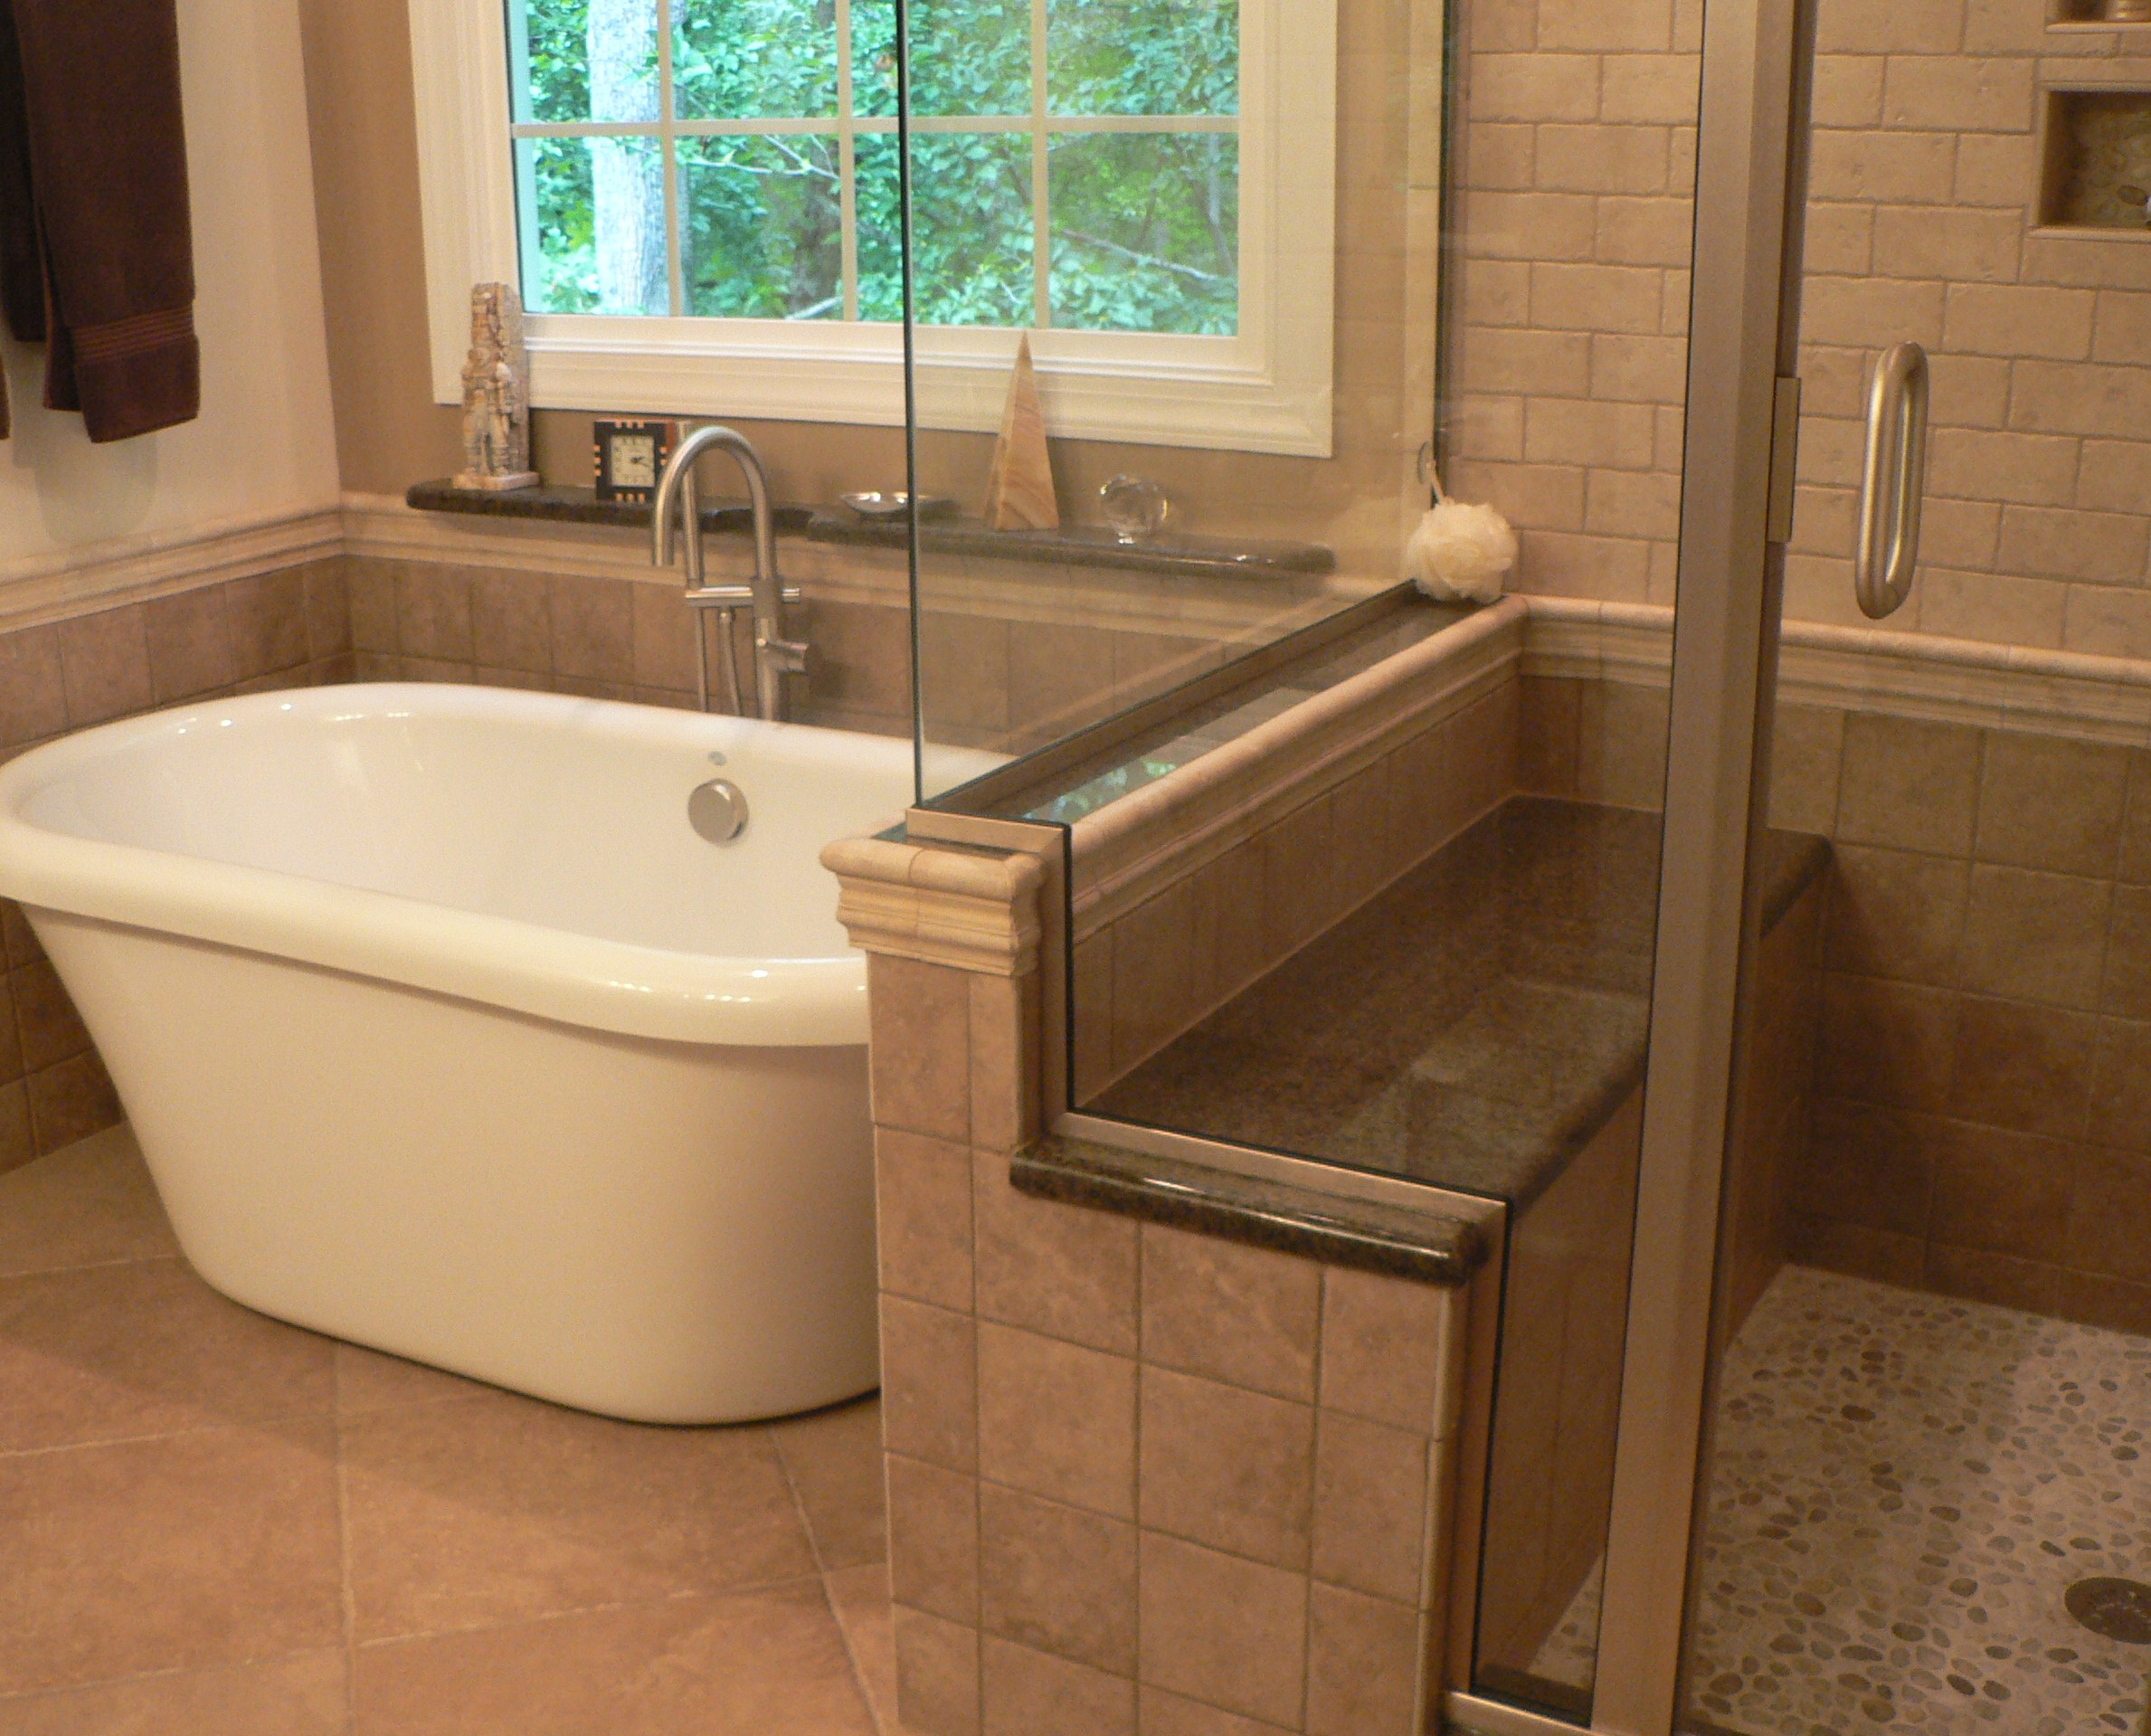 Remodel Bathroom Shower Cost average cost to remodel bathroom - large and beautiful photos